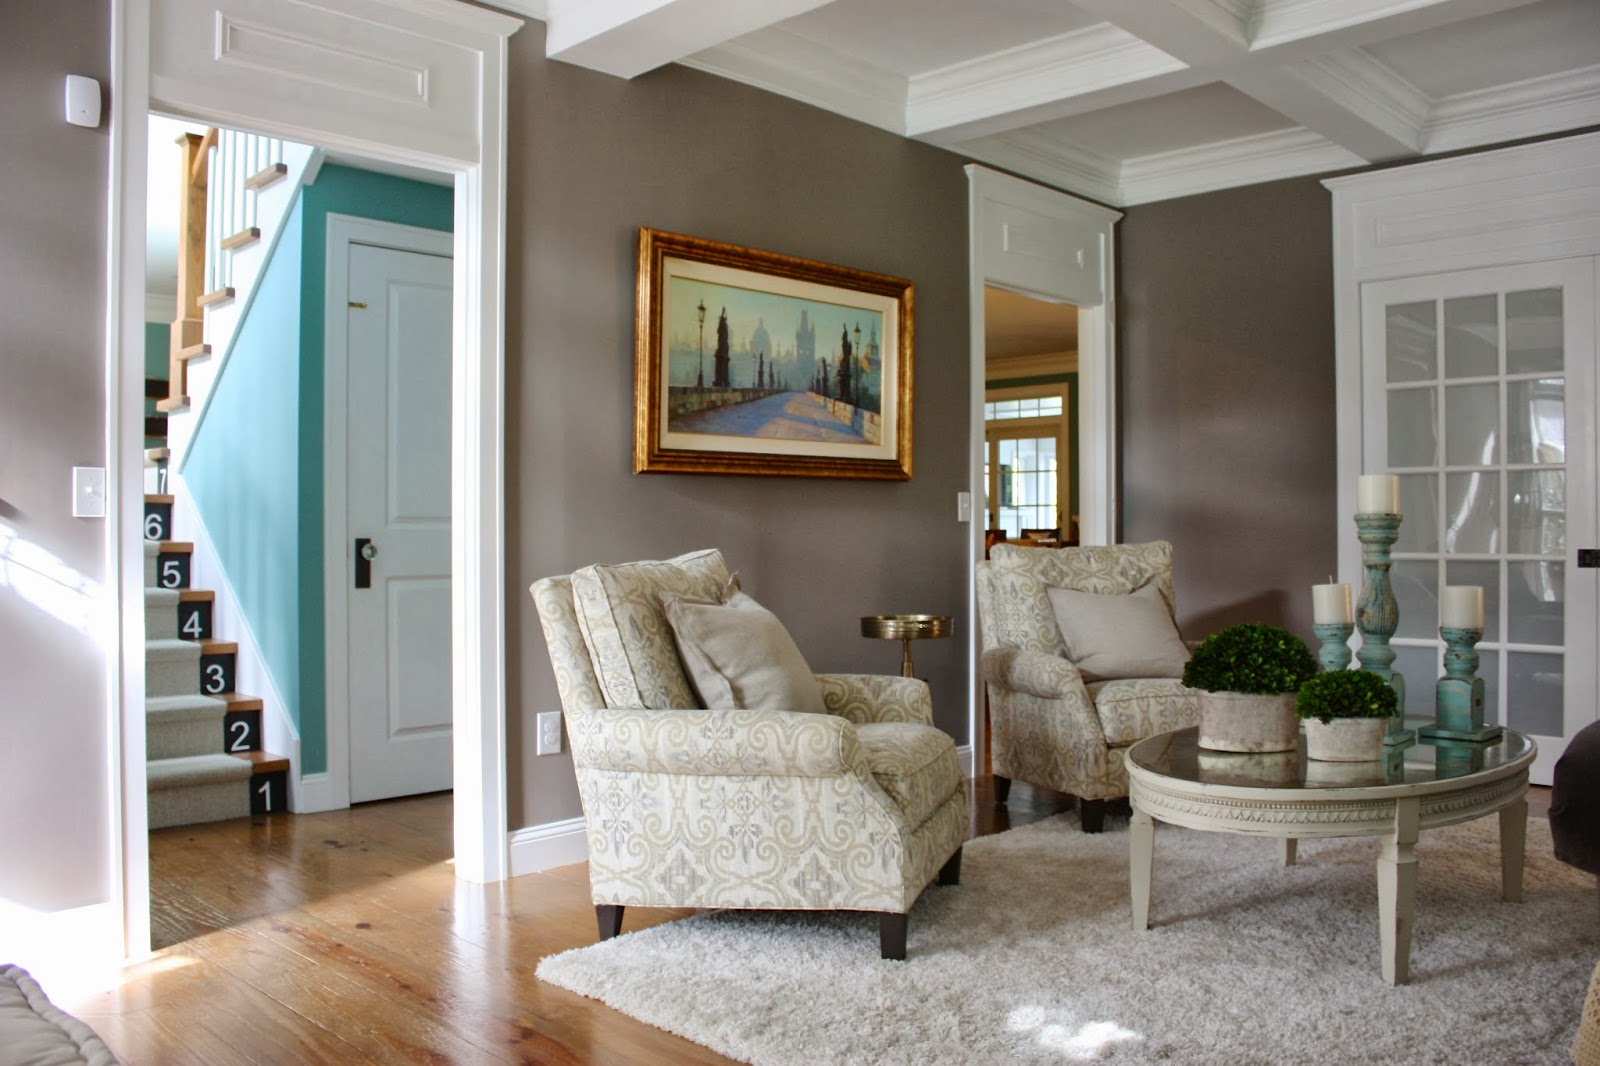 The yellow cape cod before after living room makeover a - Accent colors for gray living room ...